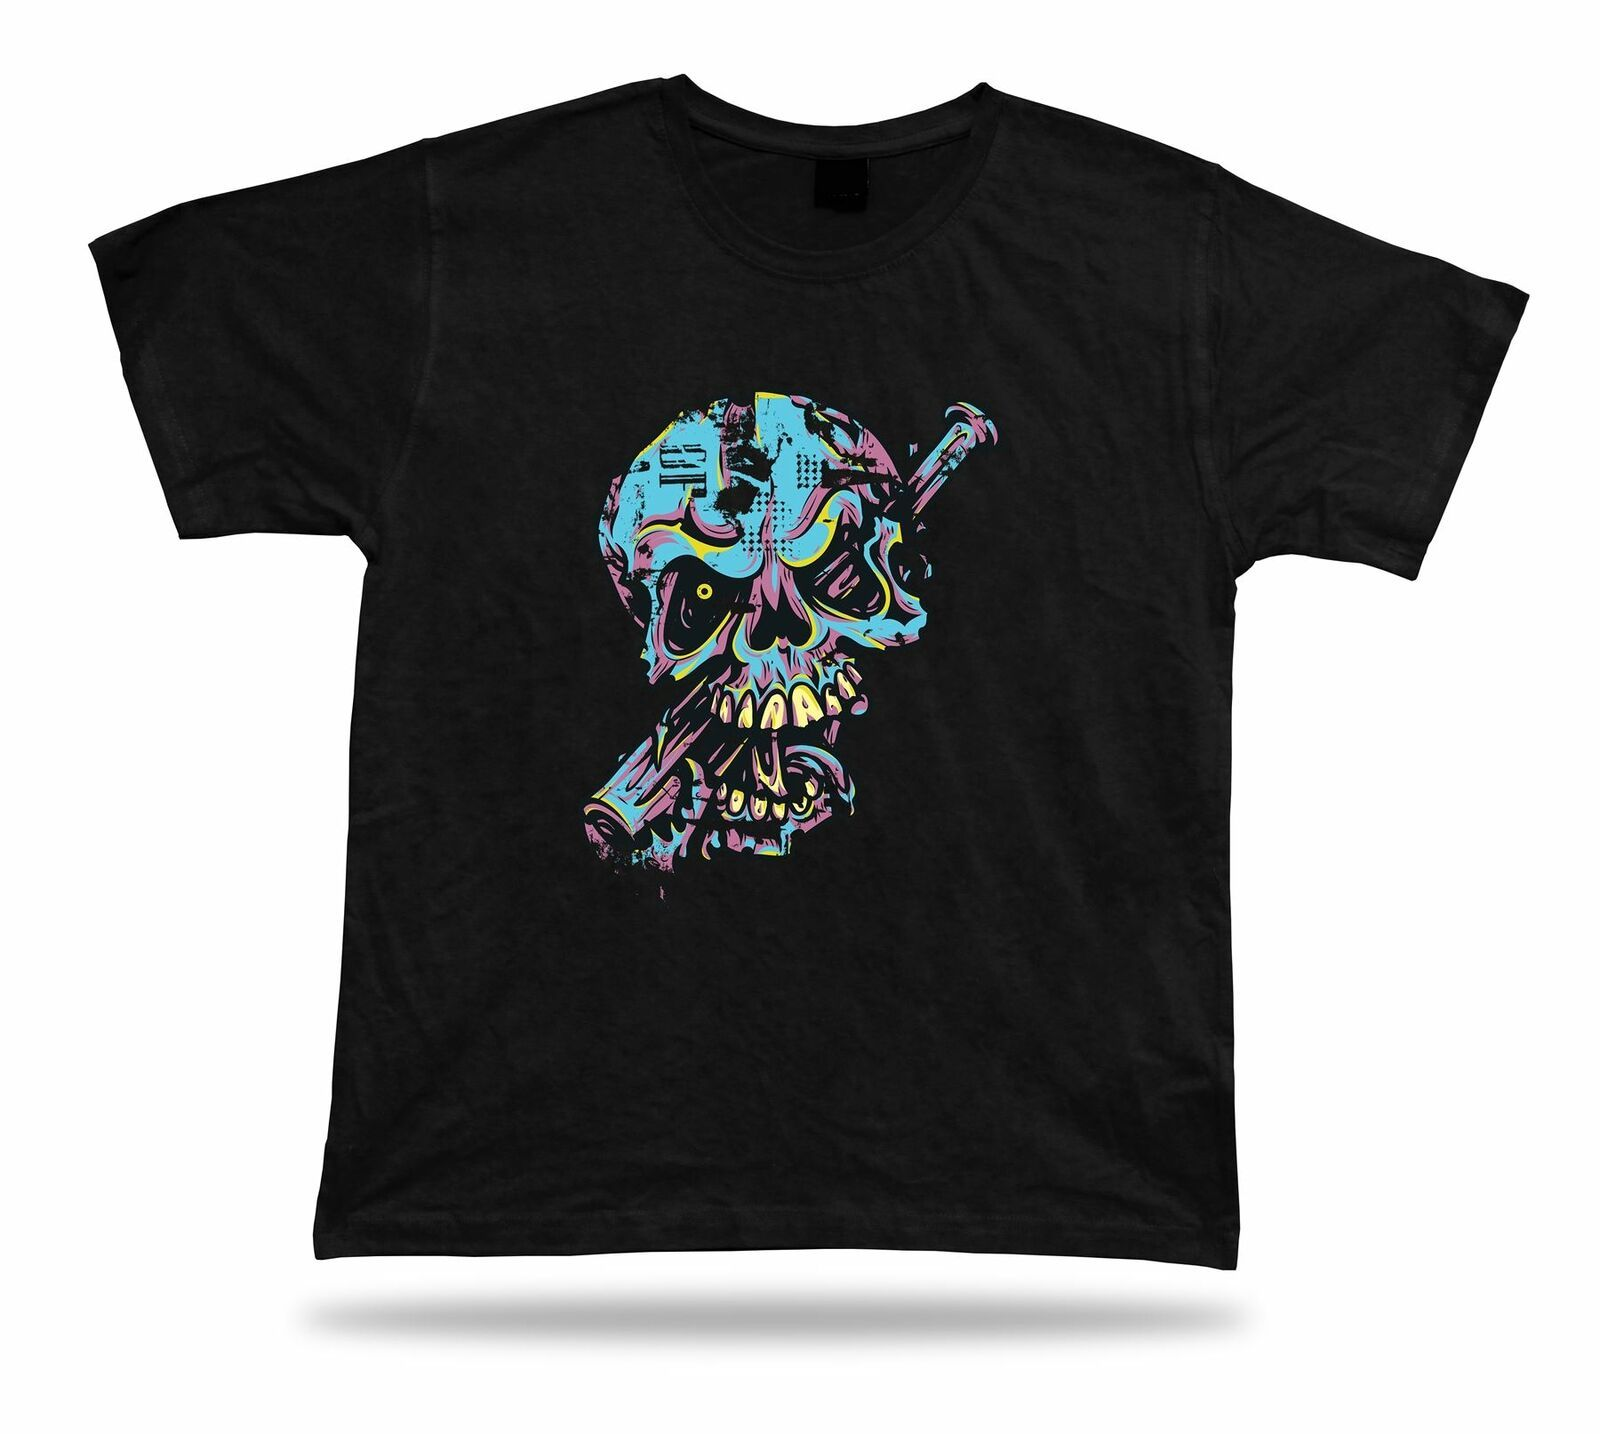 Primary image for Baseball Skull Monster Scary Bat tee tshirt stylish design special birthday gift